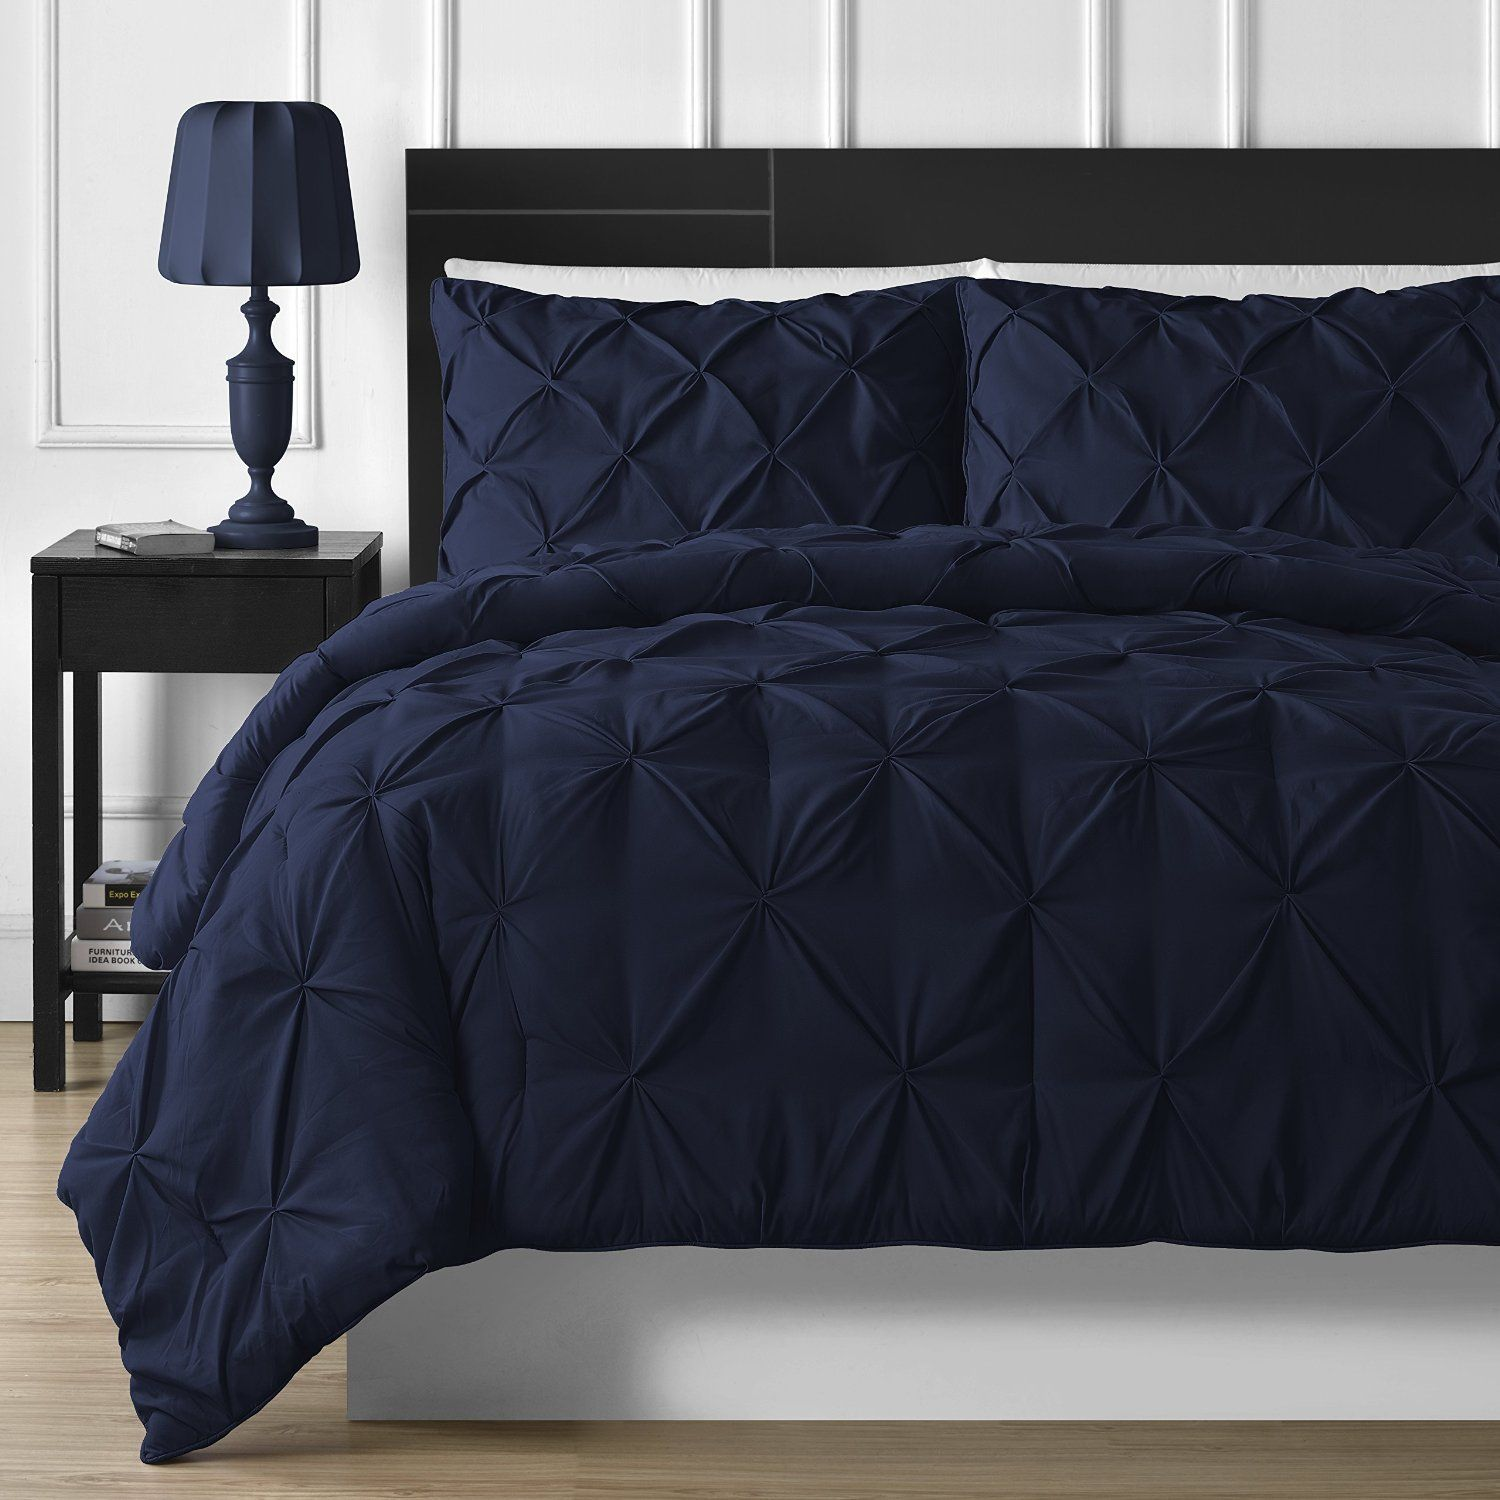 Black and blue bed sheets - P R Bedding 3 Piece Luxurious Pinch Pleat Comforter Set King Navy Blue